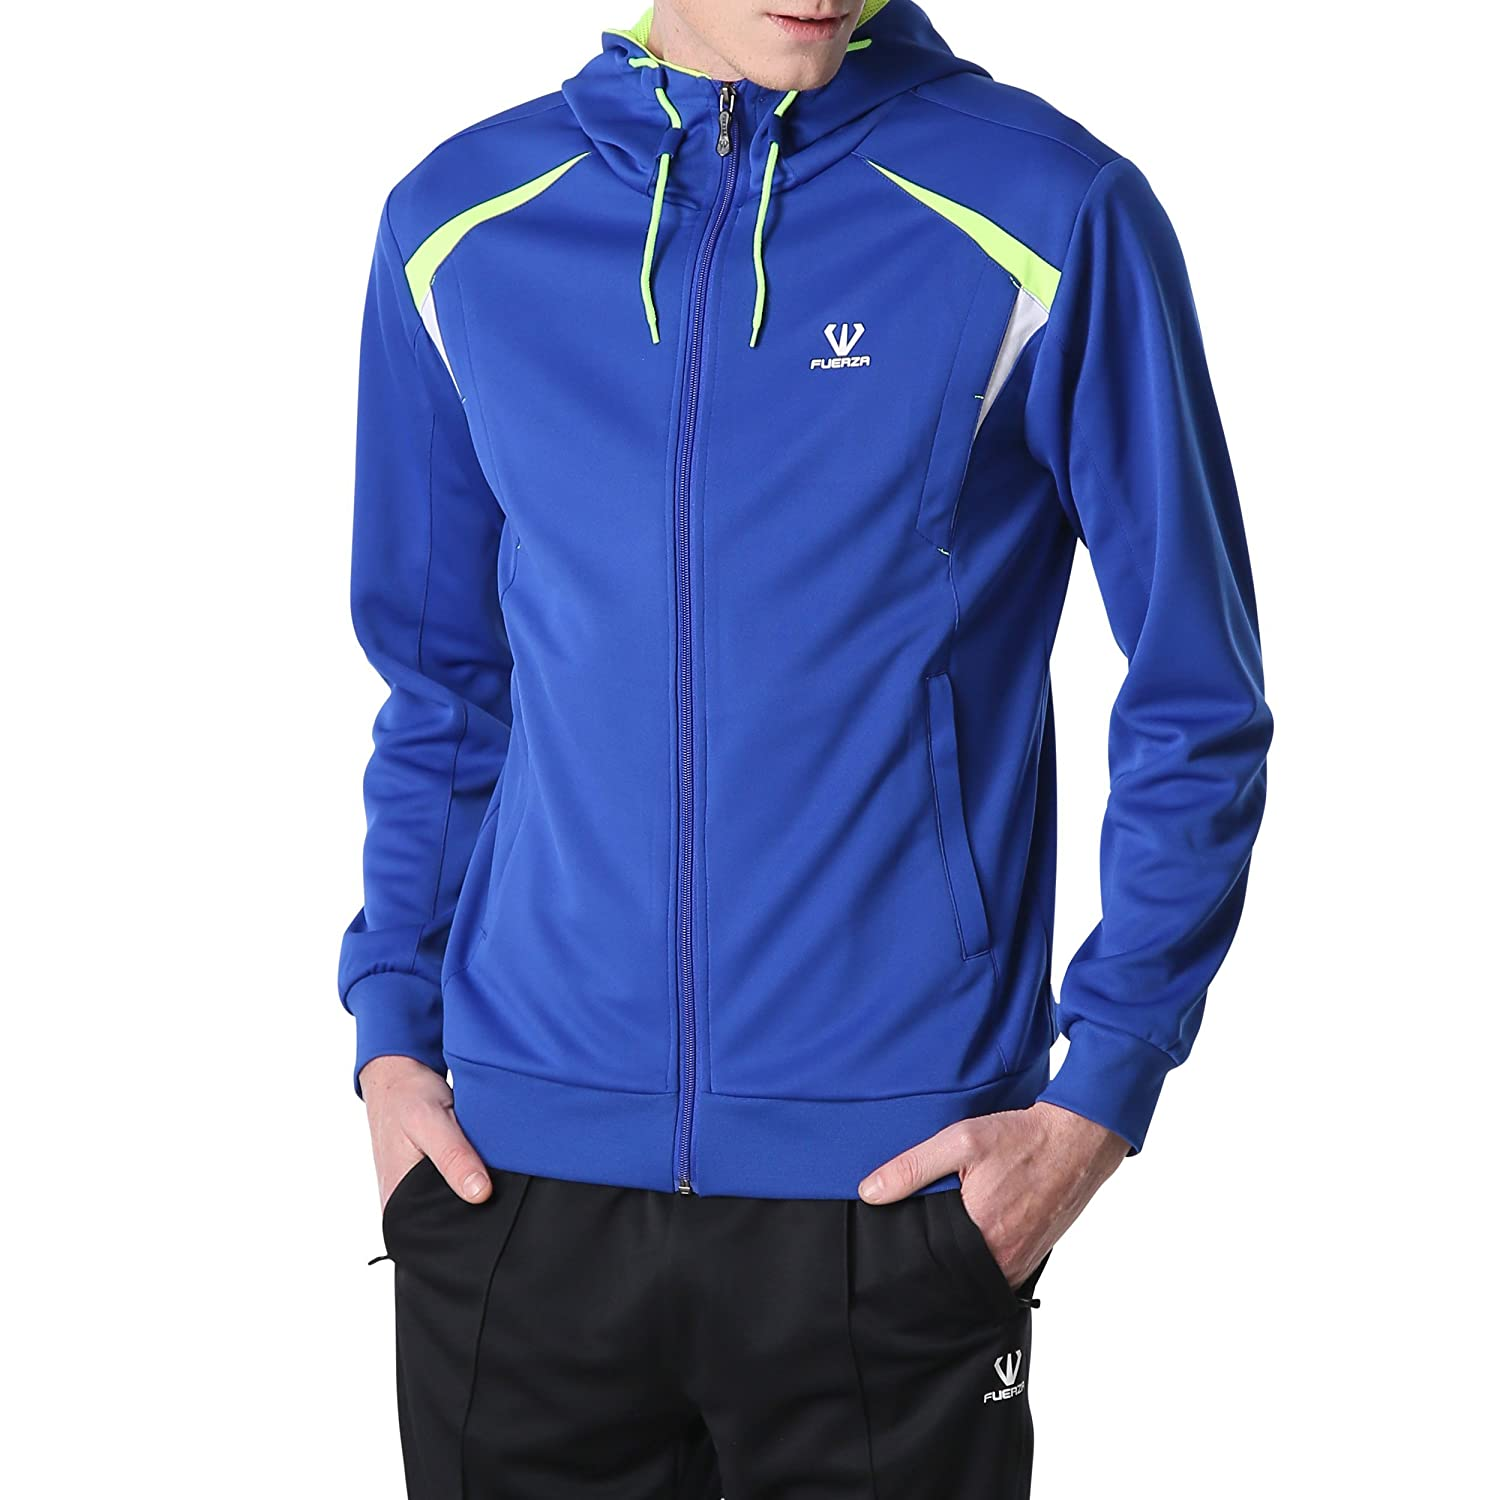 Fuerza Mens Premium Material Knit Hooded Track Jacket & Pants Tracksuit Fuerza North America